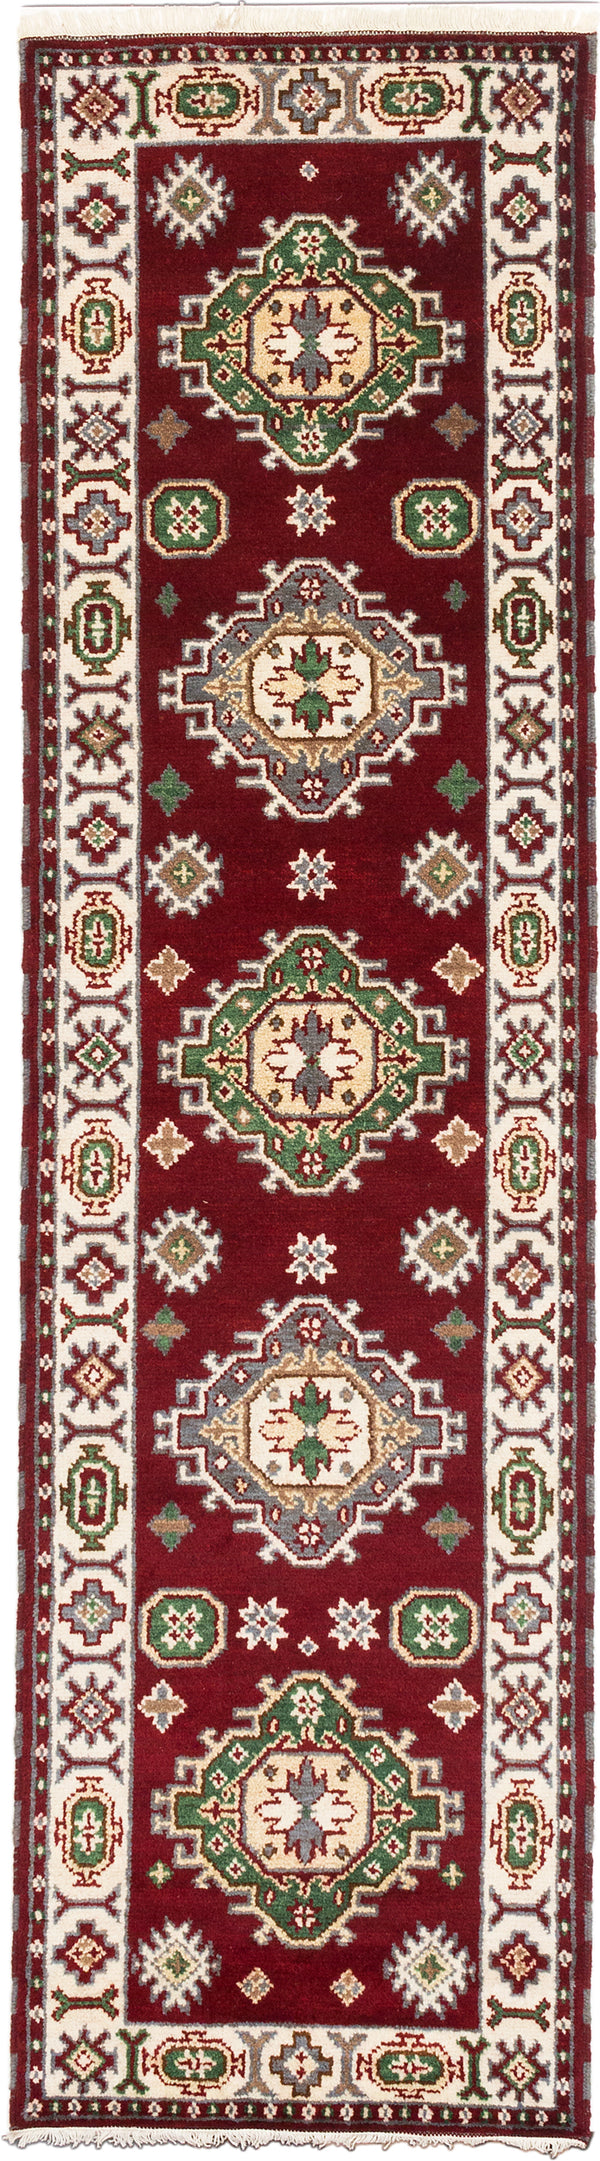 Hand-knotted Indian Geometric  Traditional Royal-Kazak Runner rug  Cream, Dark Burgundy 2.8 x 9.1